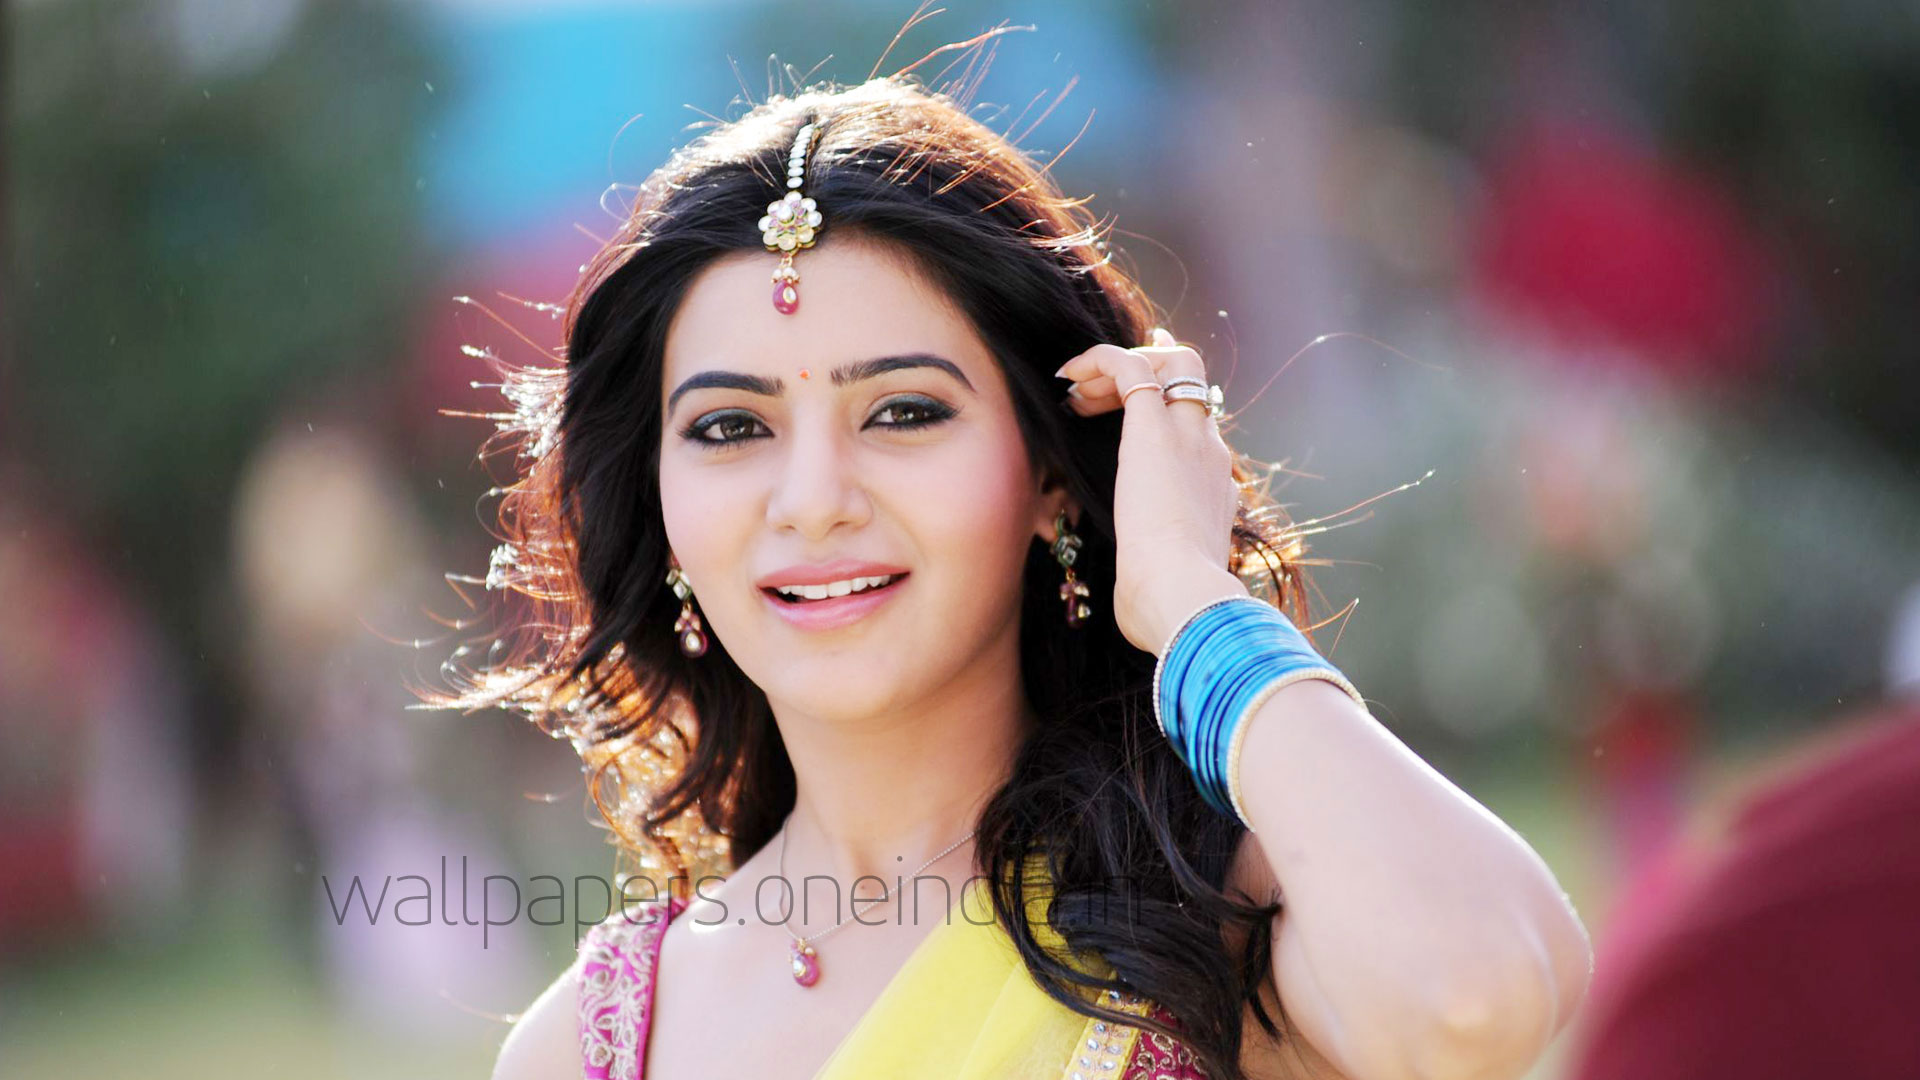 Samantha Hq Wallpapers Samantha Wallpapers 14373 Oneindia Wallpapers